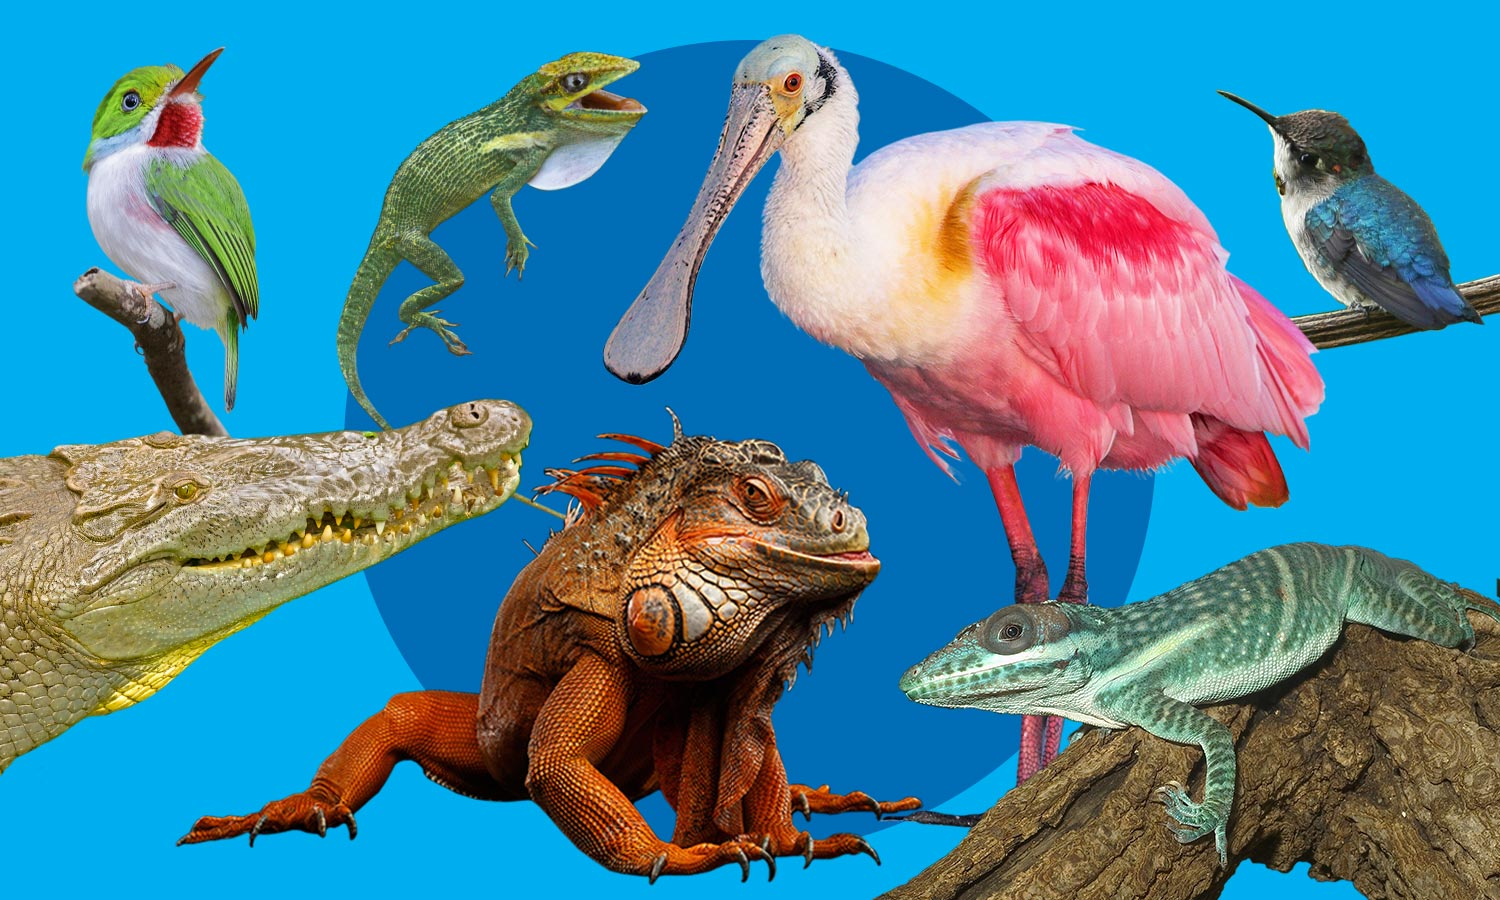 Seven reptiles and birds collaged together.